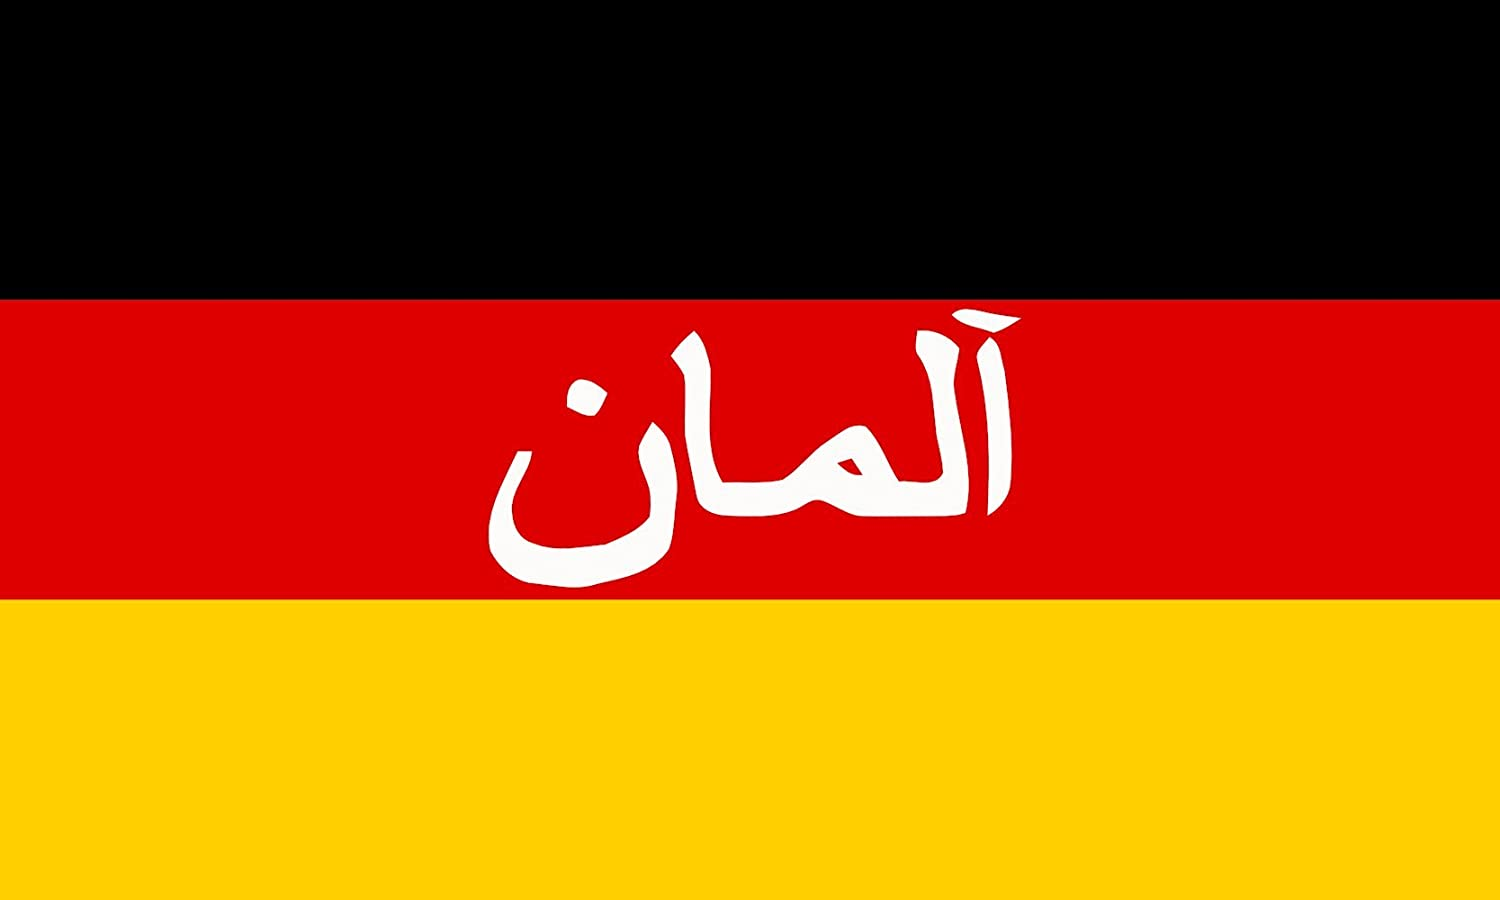 DIPLOMAT-FLAGS German Isaf Forces | Icon of The German Isaf Forces ...